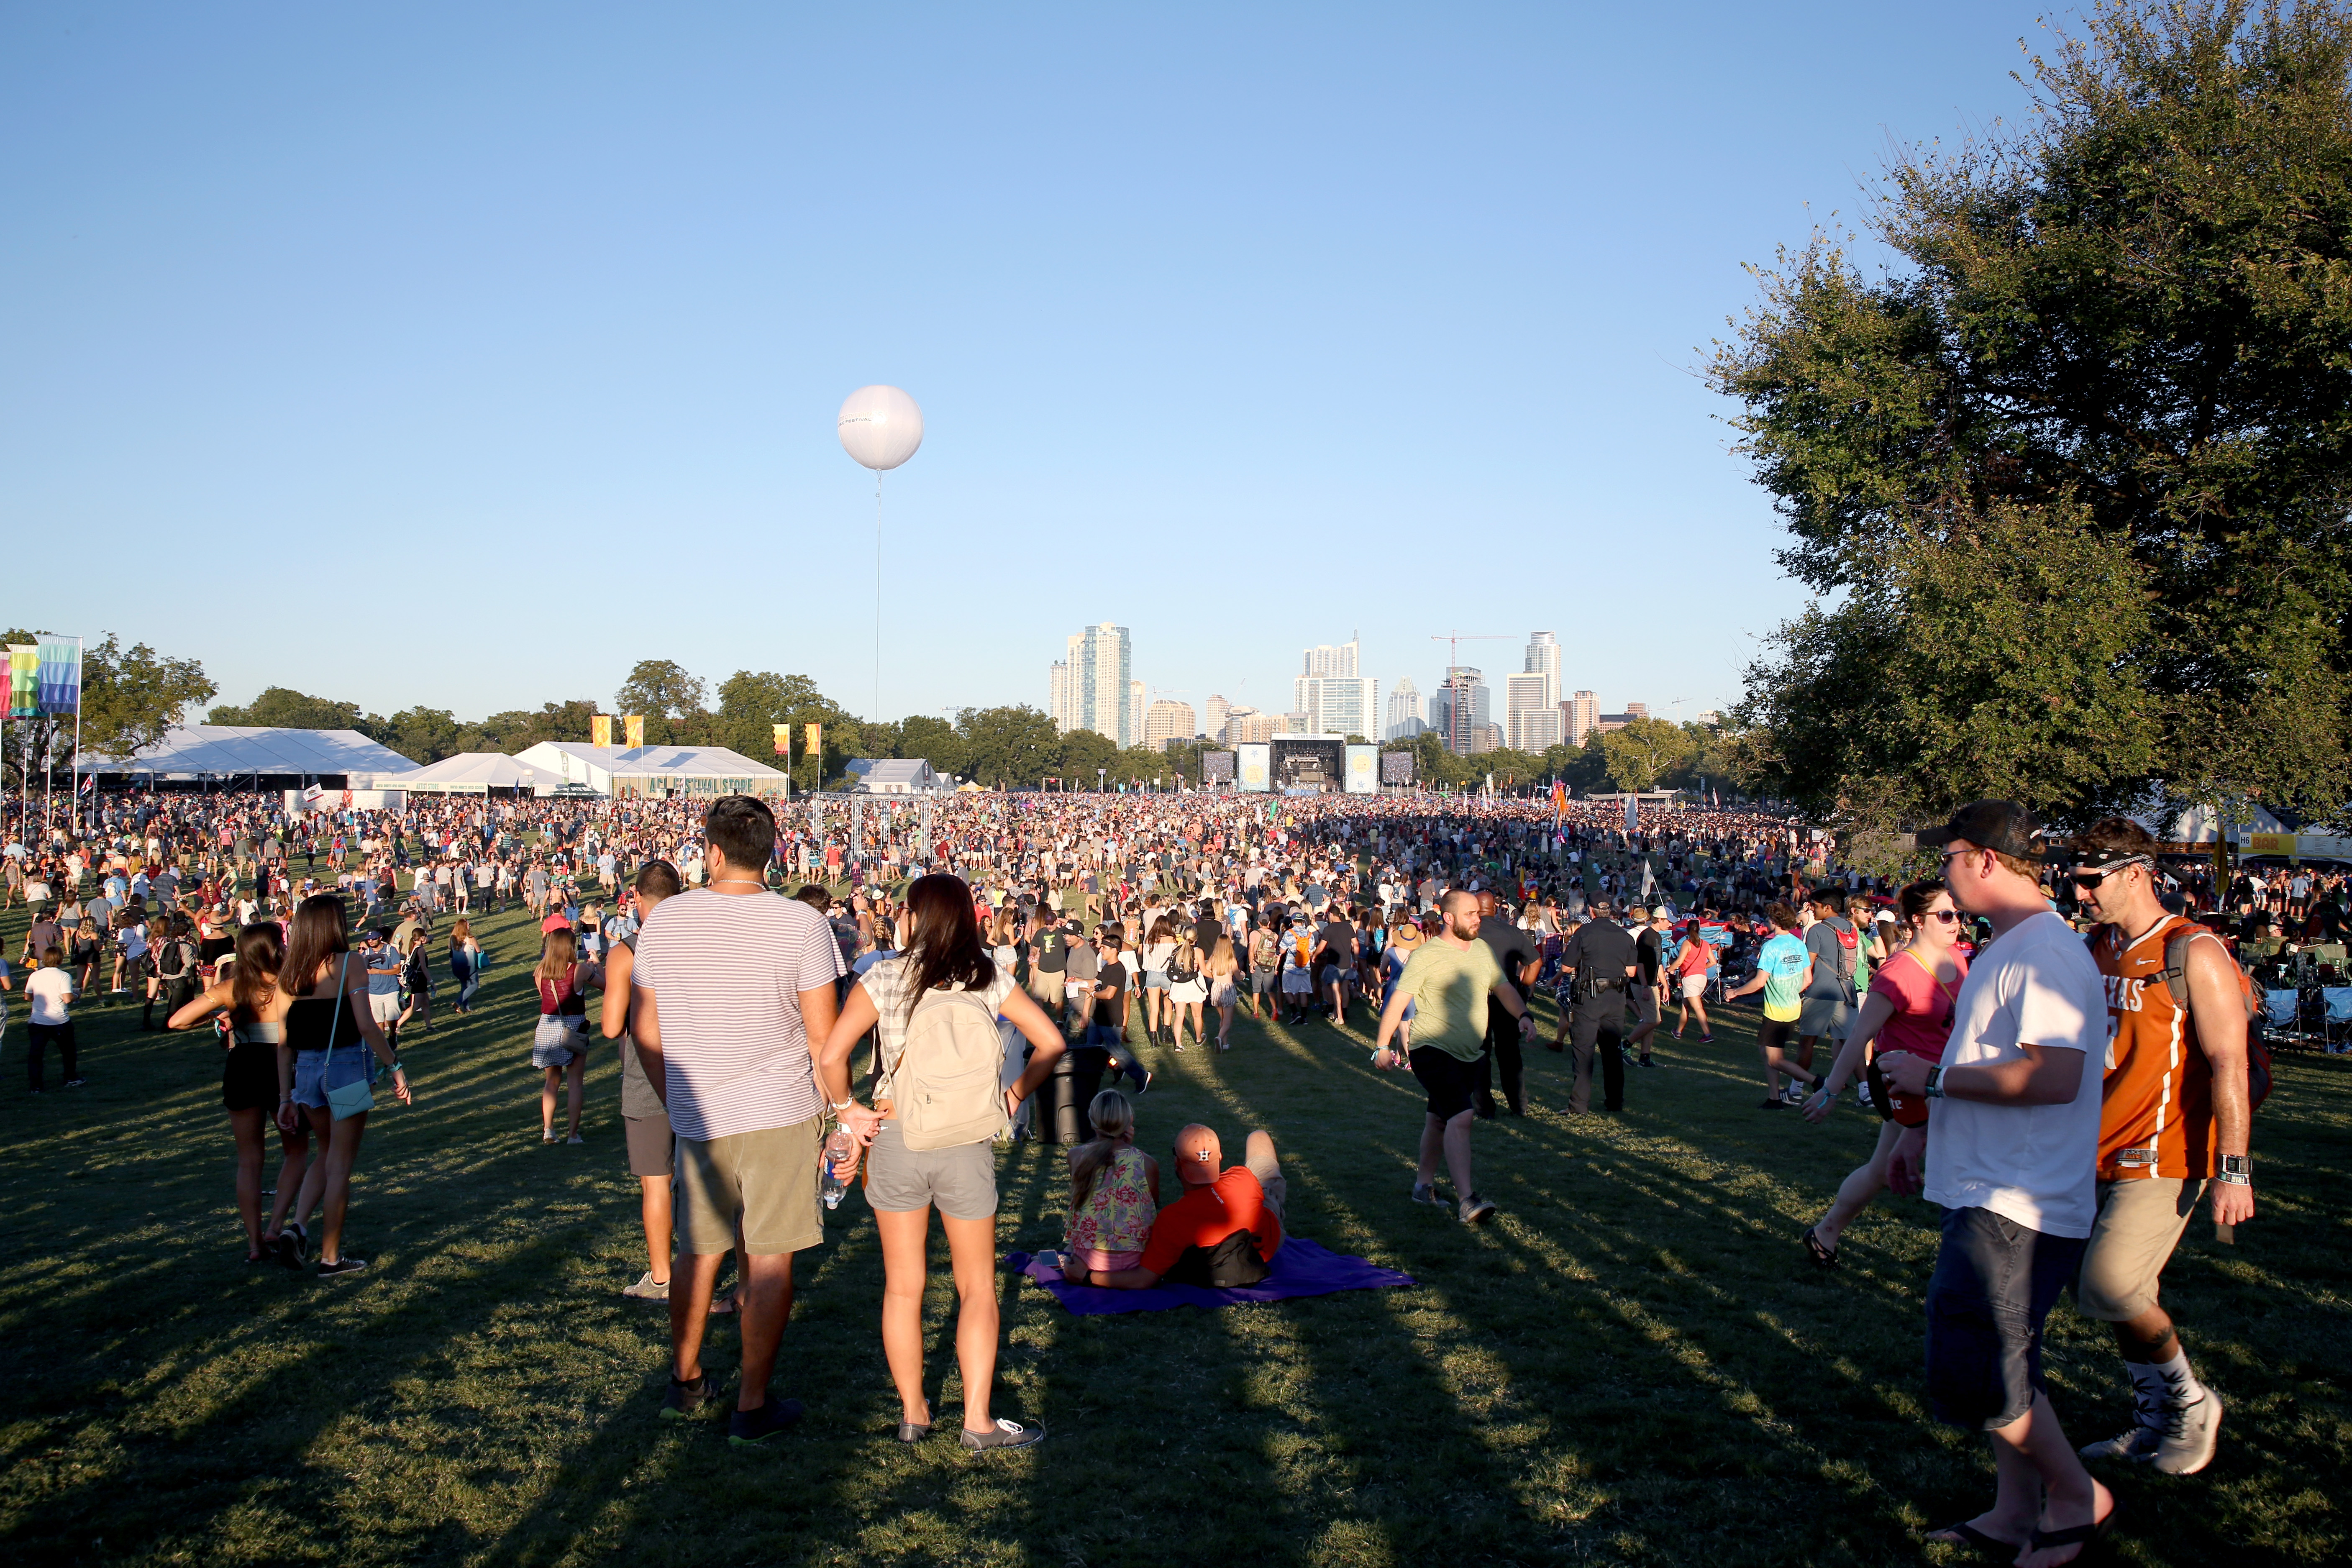 A large crowd in an Austin park with a stage in the distance, daytime